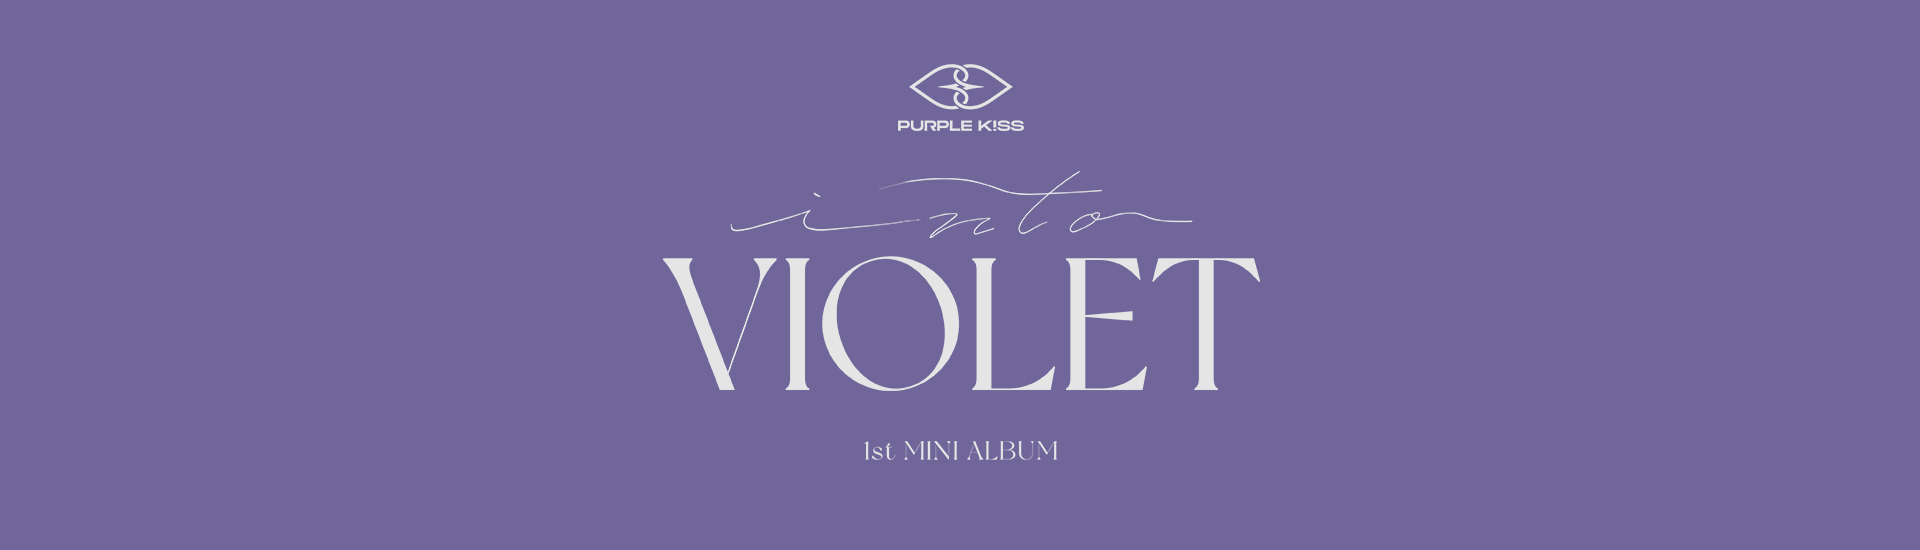 PURPLE K!SS - 1ST MINI ALBUM [INTO VIOLET] CALL FAN SIGN